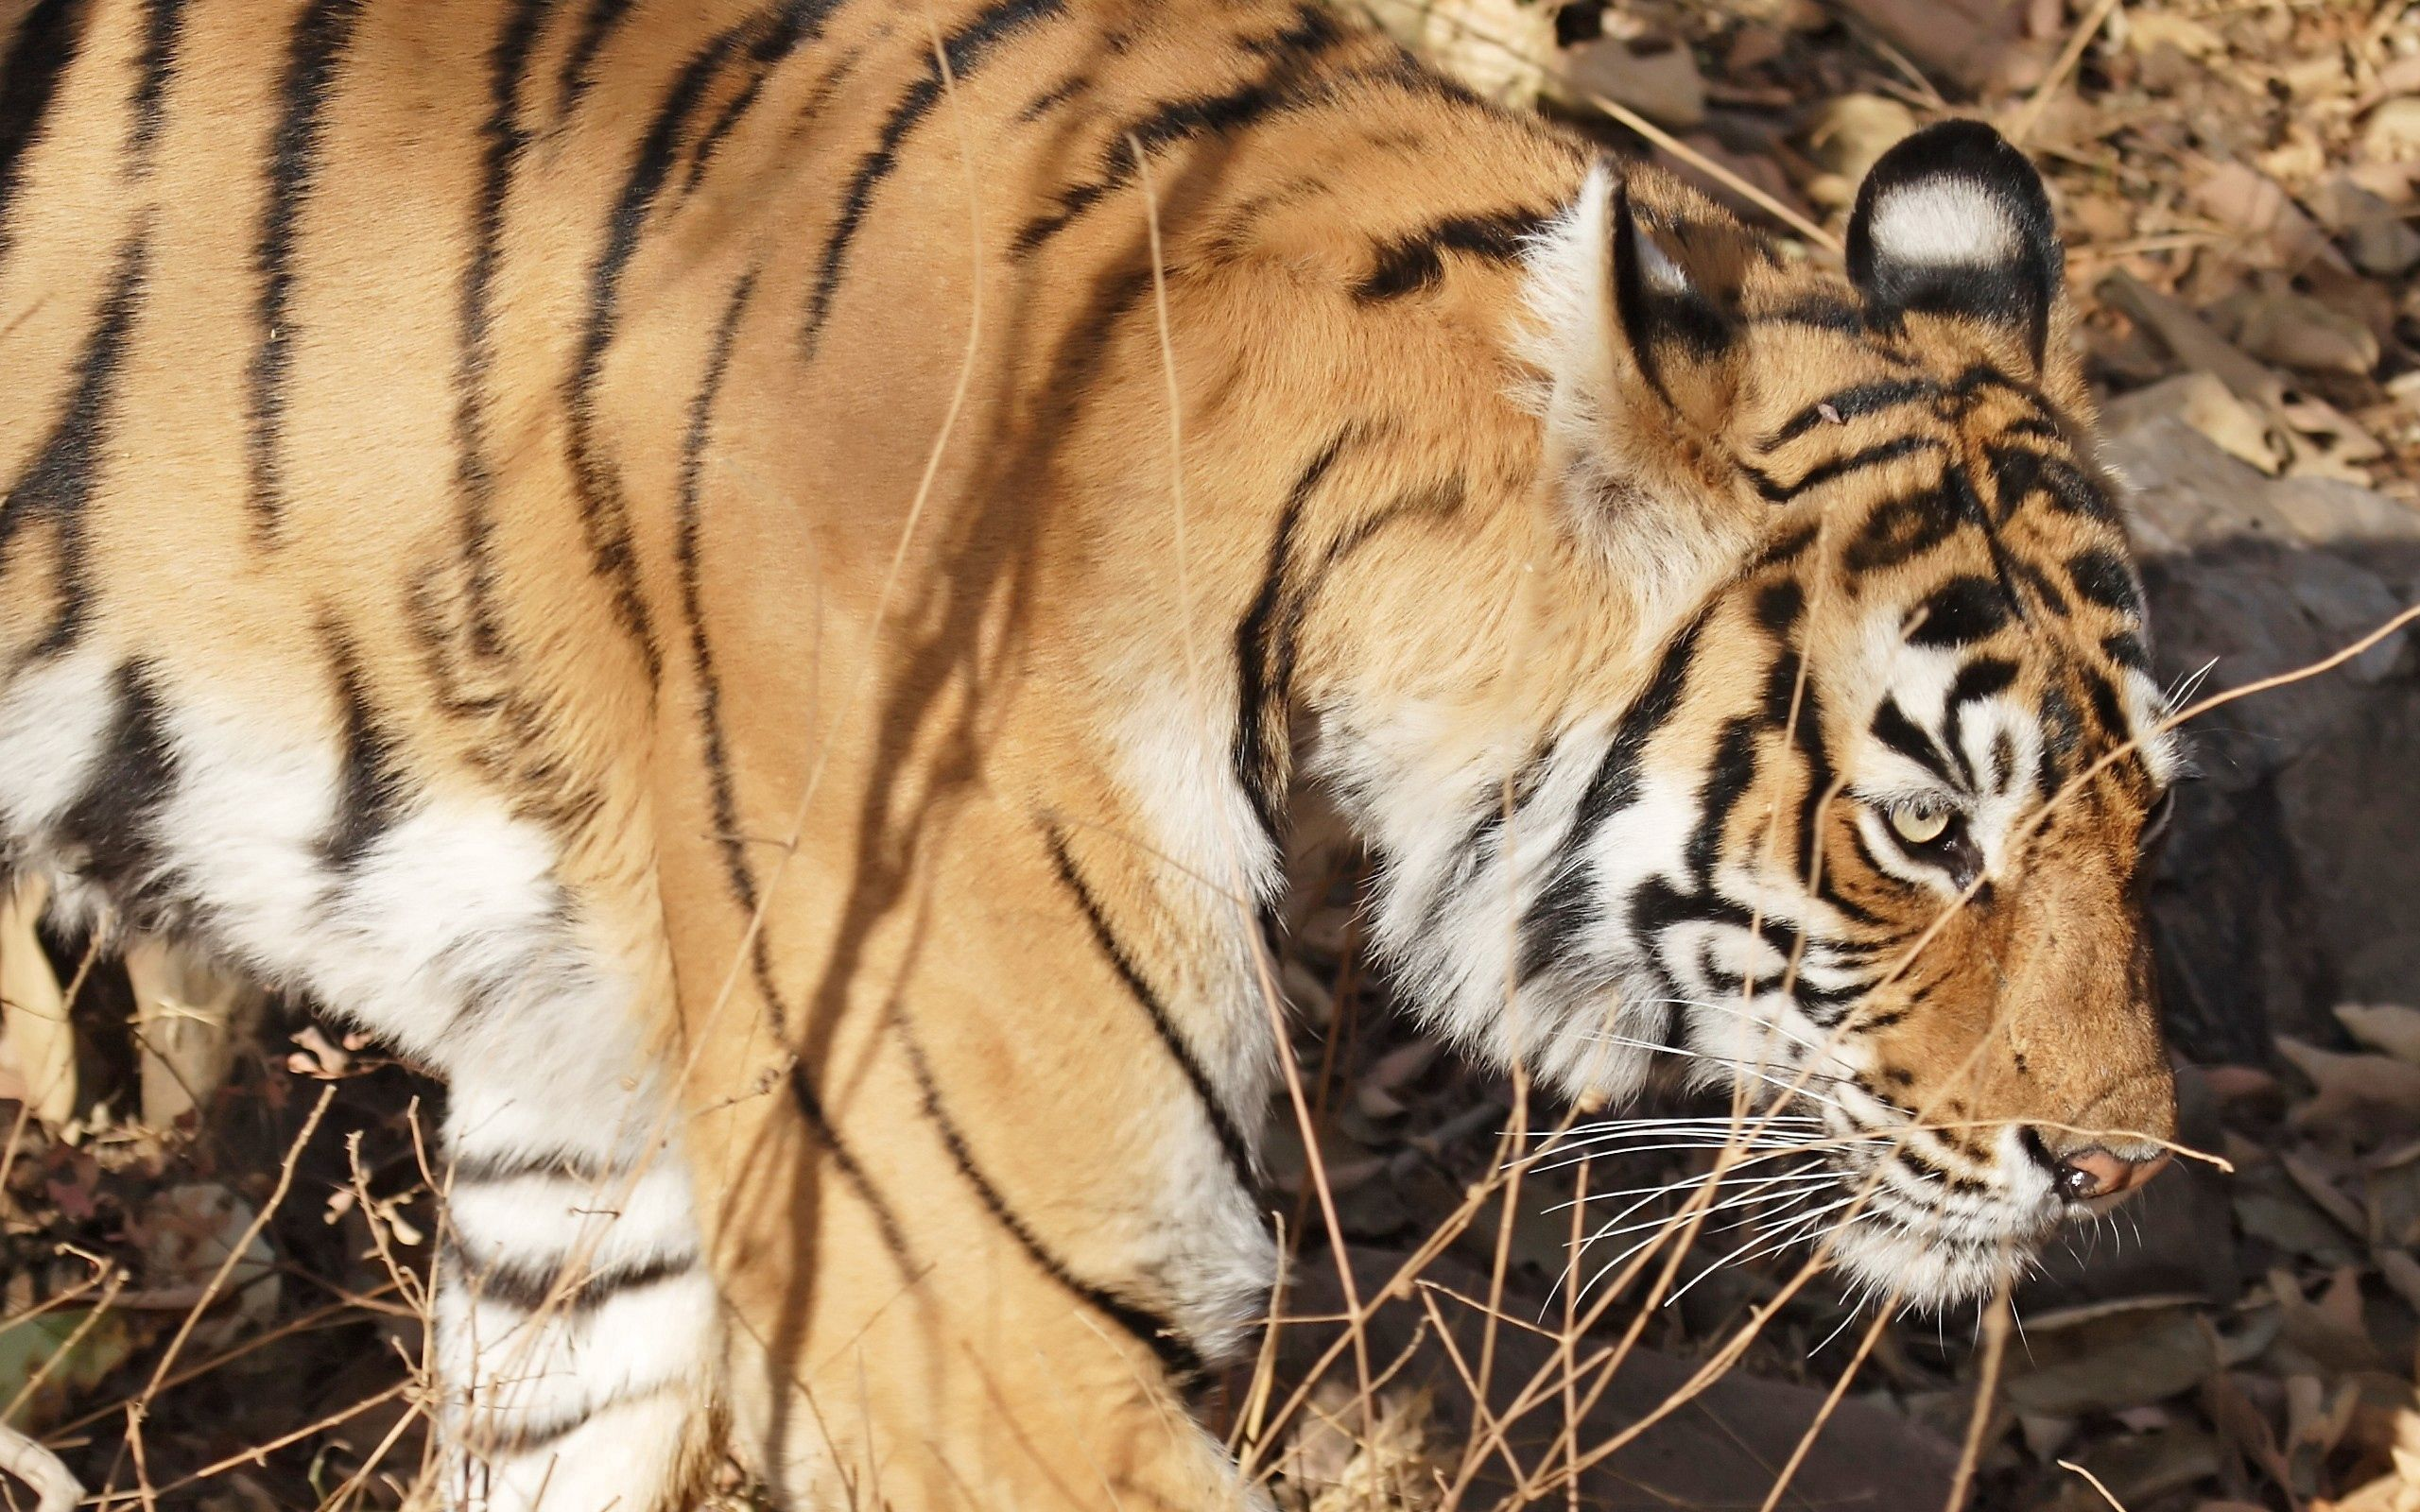 137064 download wallpaper Animals, Tiger, Muzzle, Striped screensavers and pictures for free